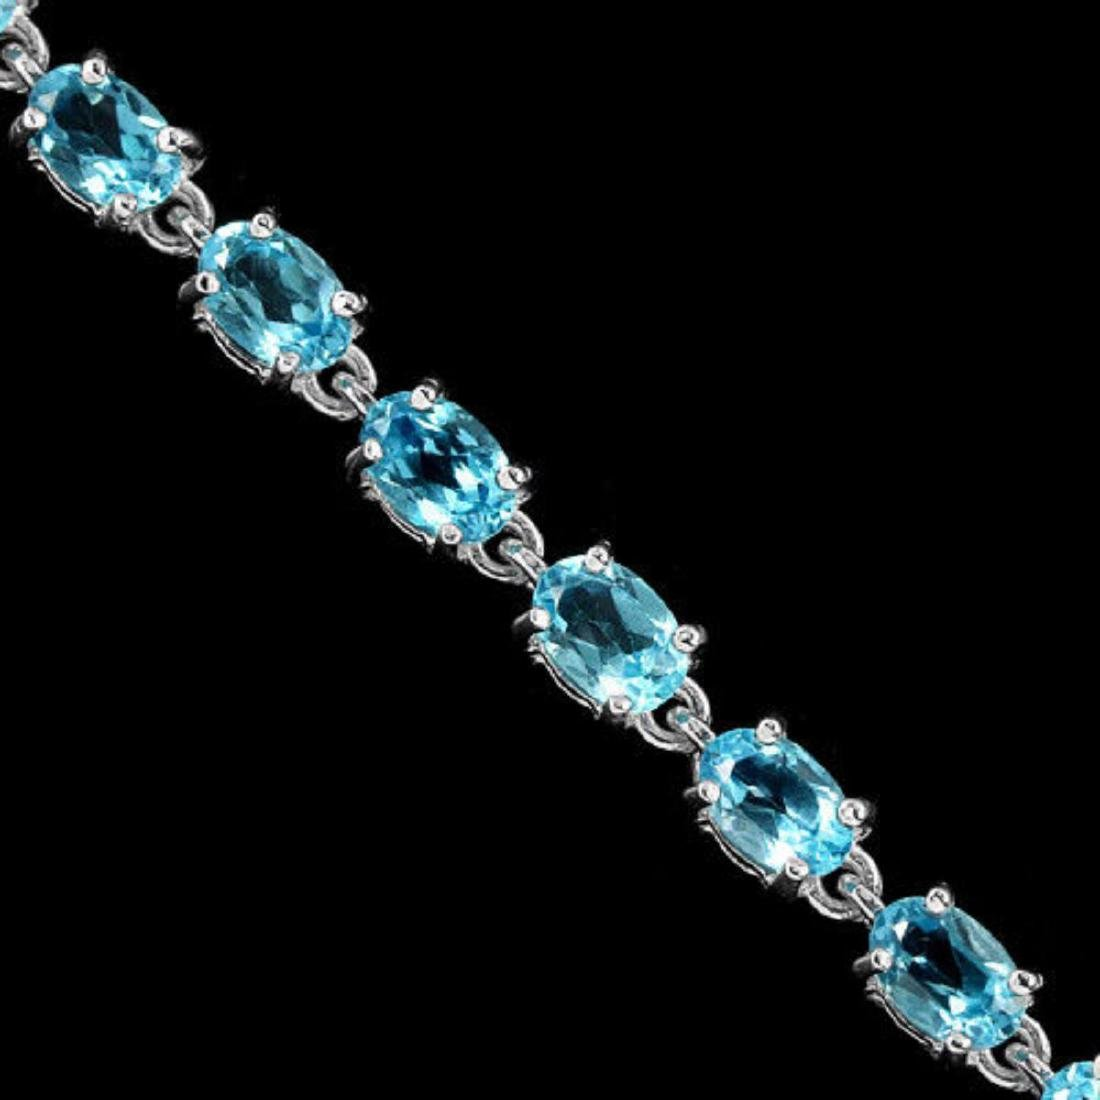 Natural SWISS BLUE TOPAZ Bracelet - 2